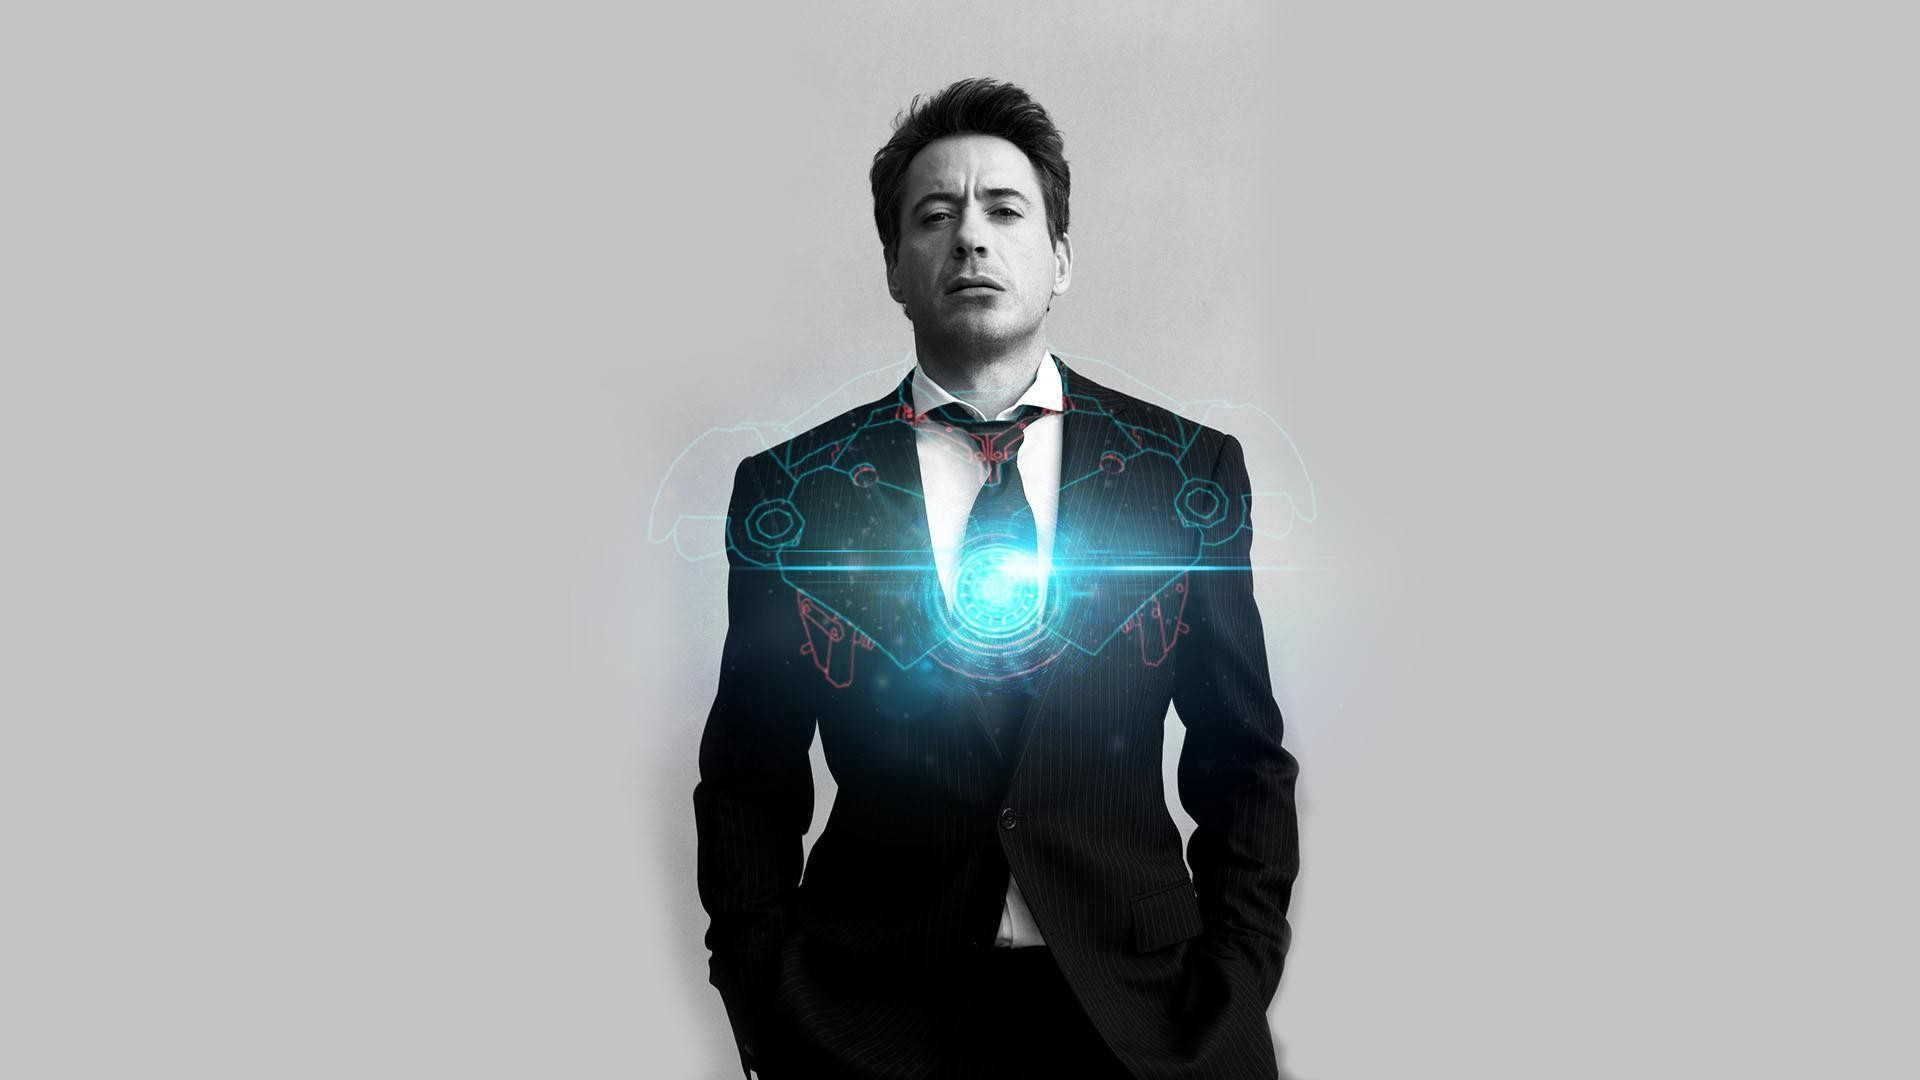 Free hd wallpaper robert downey jr - Robert Downey Jr Wallpapers